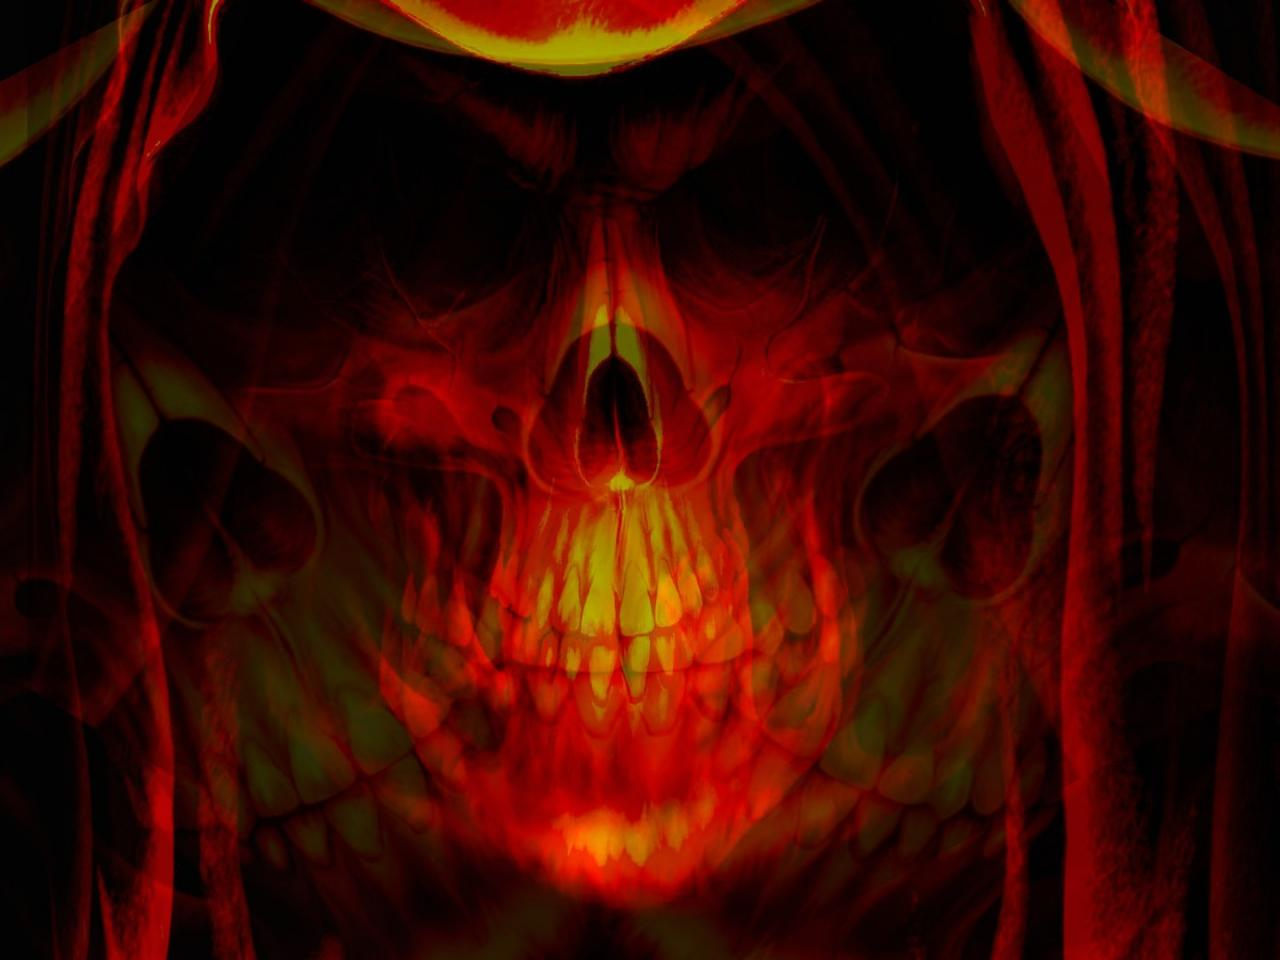 Android Phones Wallpapers Android Wallpaper Skull In Fire 1280x960